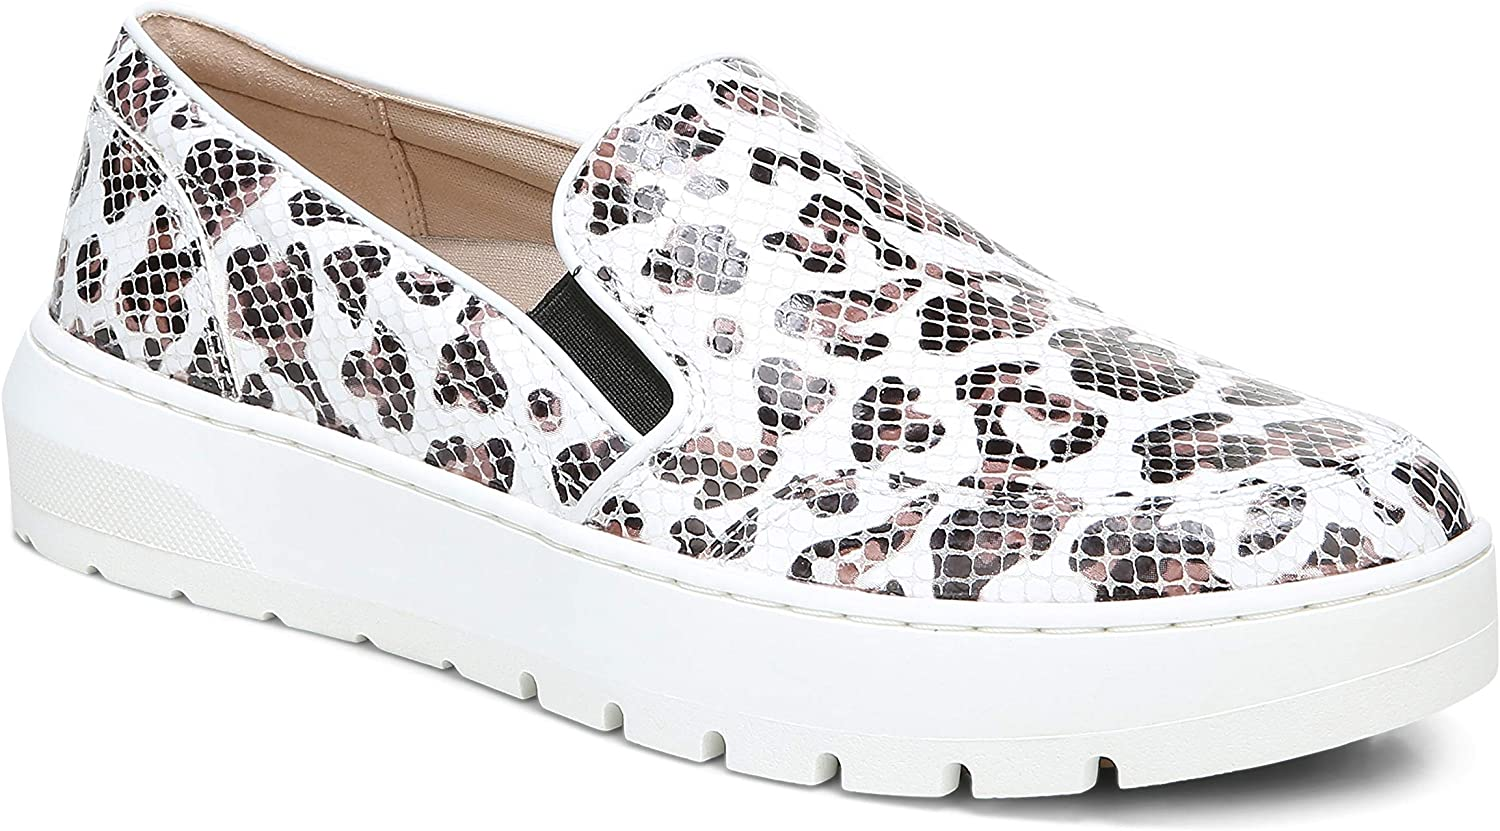 Vionic Women's Max In a popularity 46% OFF Abyss Dinora Supportive Platform Slip-on Sneaker-